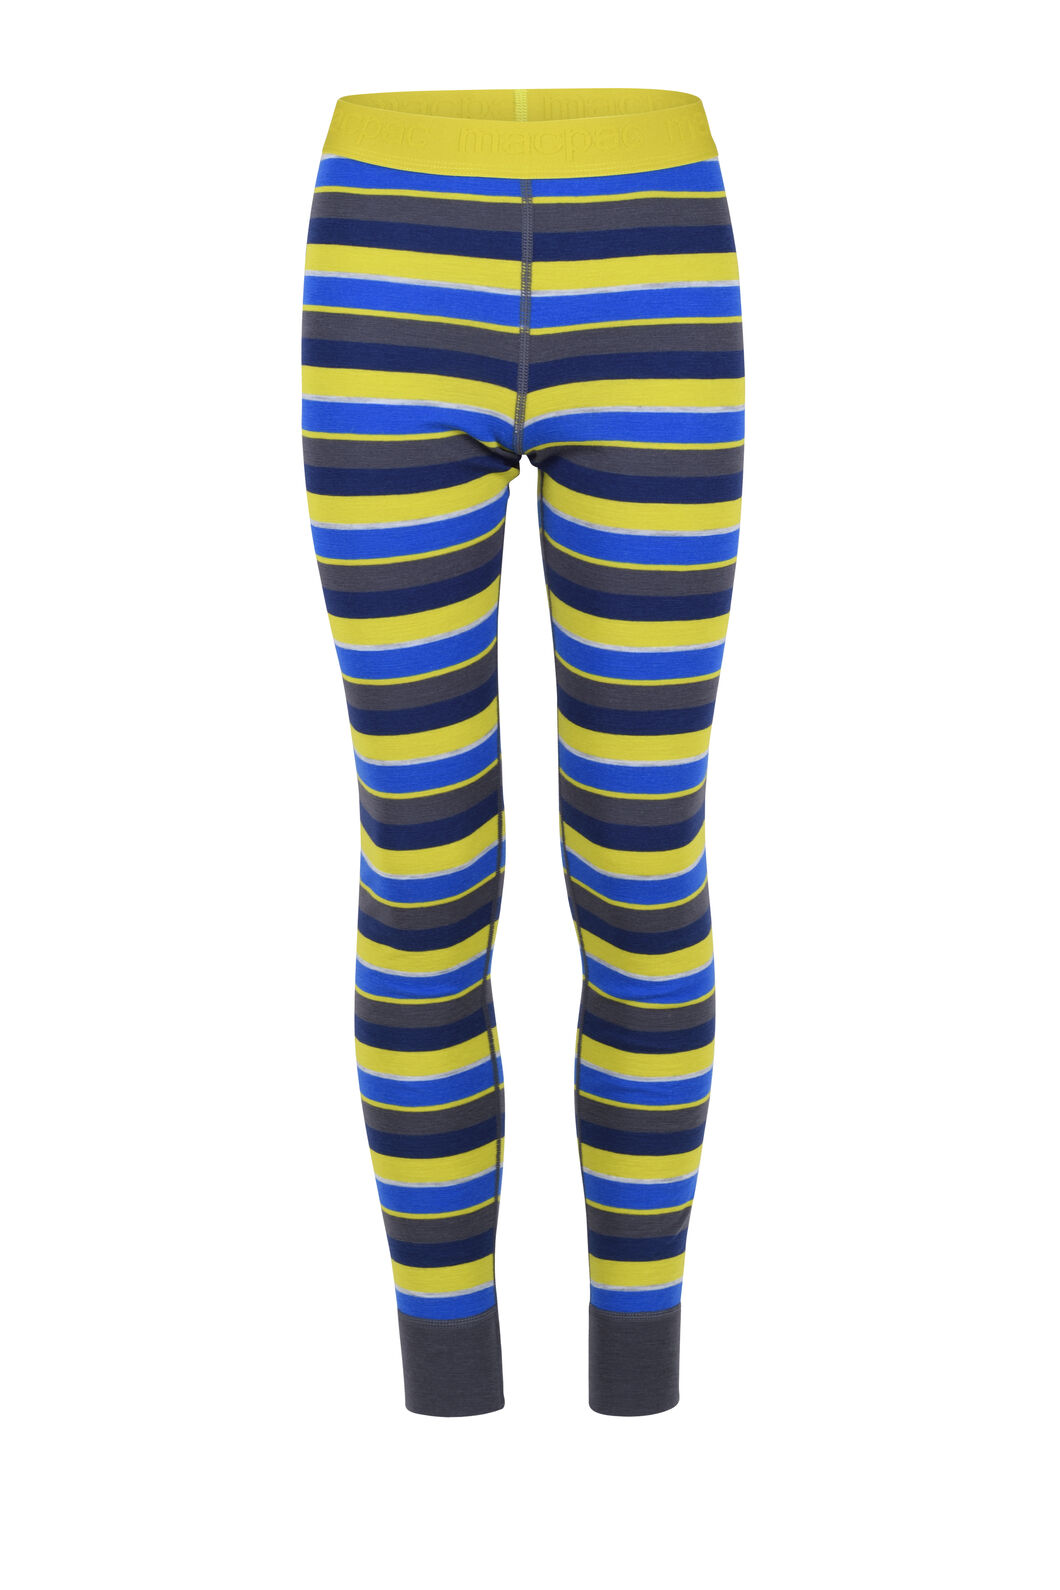 Macpac 220 Merino Long Johns - Kids', Blue Depths Stripe, hi-res